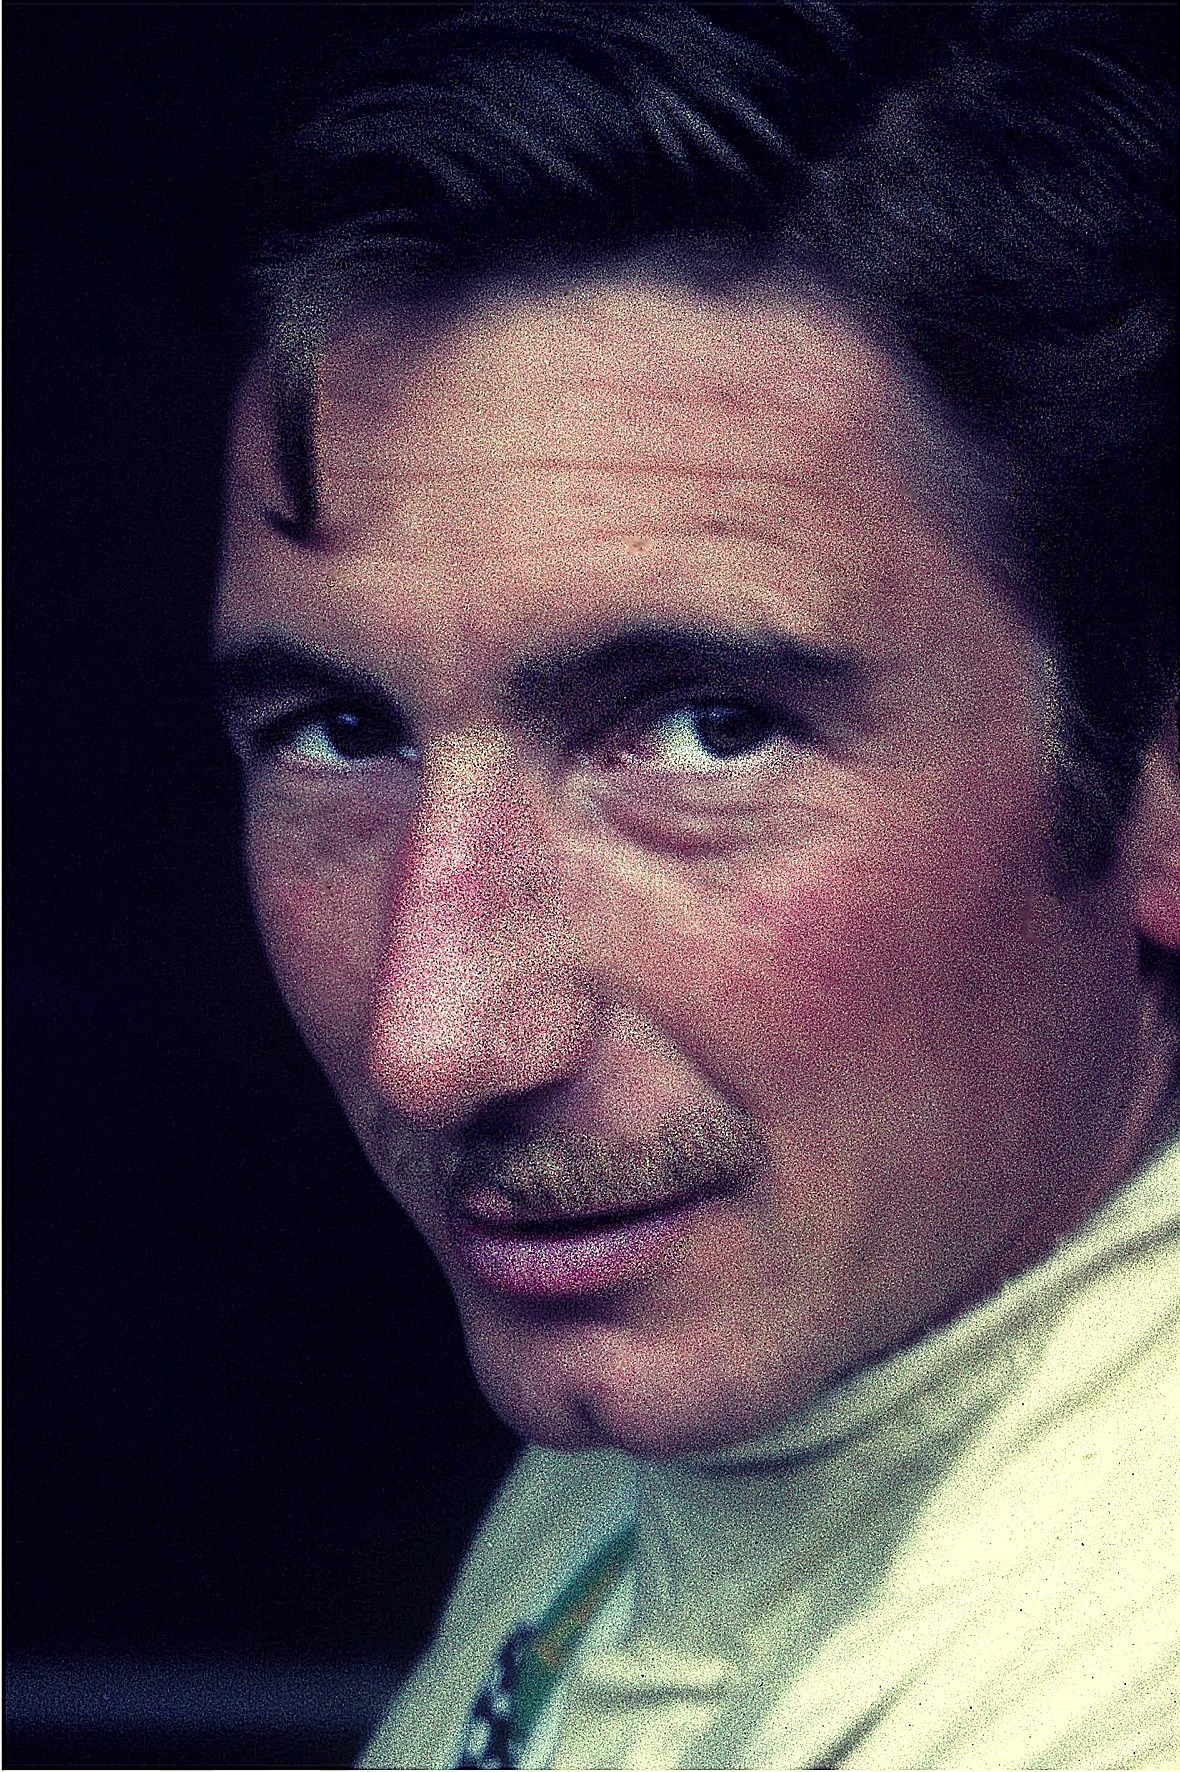 Jo Siffert - Wikipedia